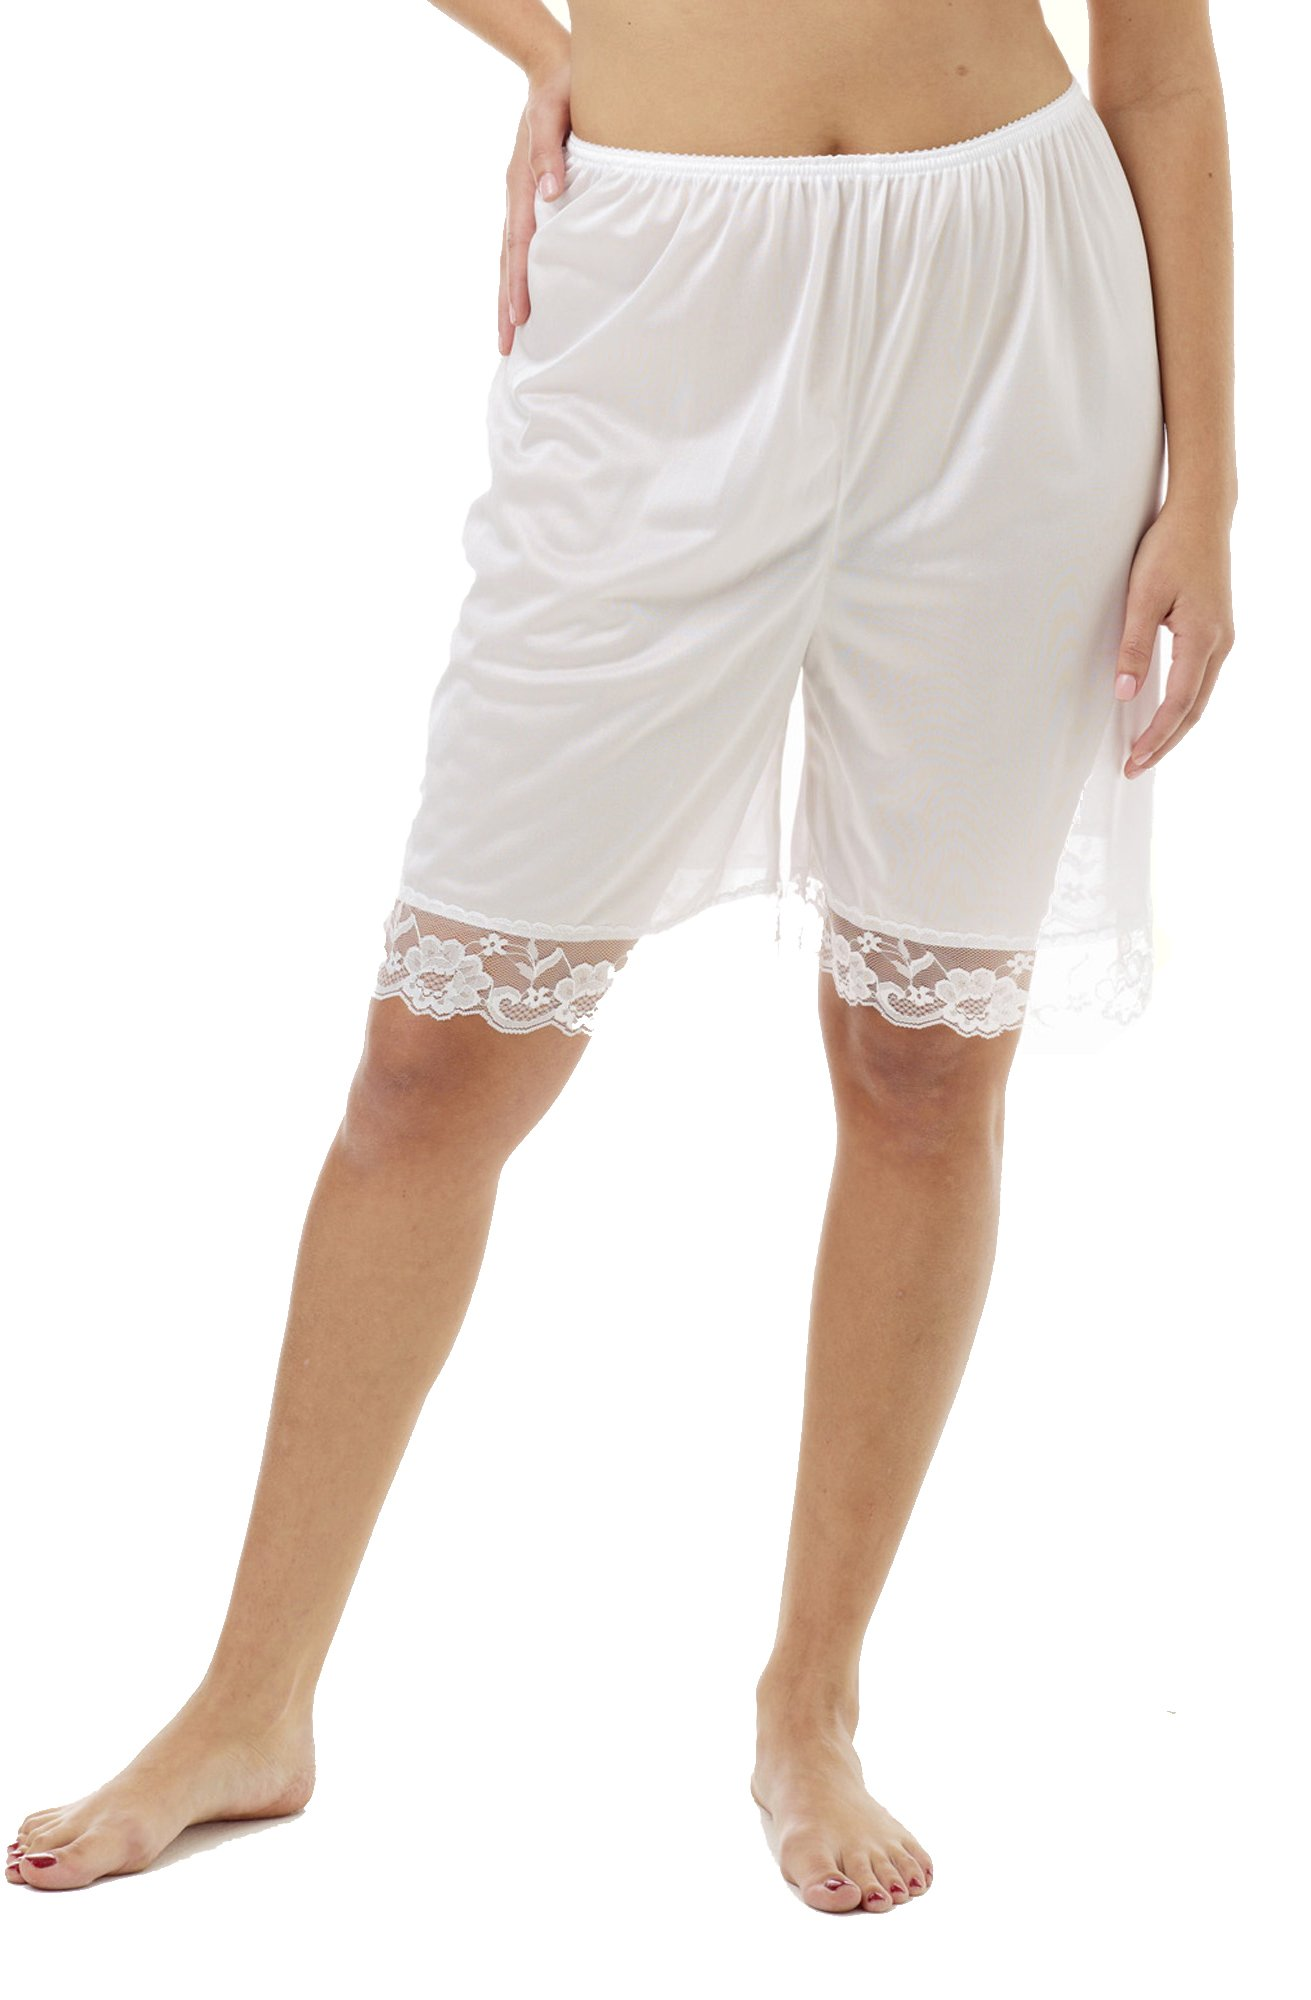 Underworks Pettipants Nylon Culotte Slip Bloomers Split Skirt 9-inch Inseam 3-Pack